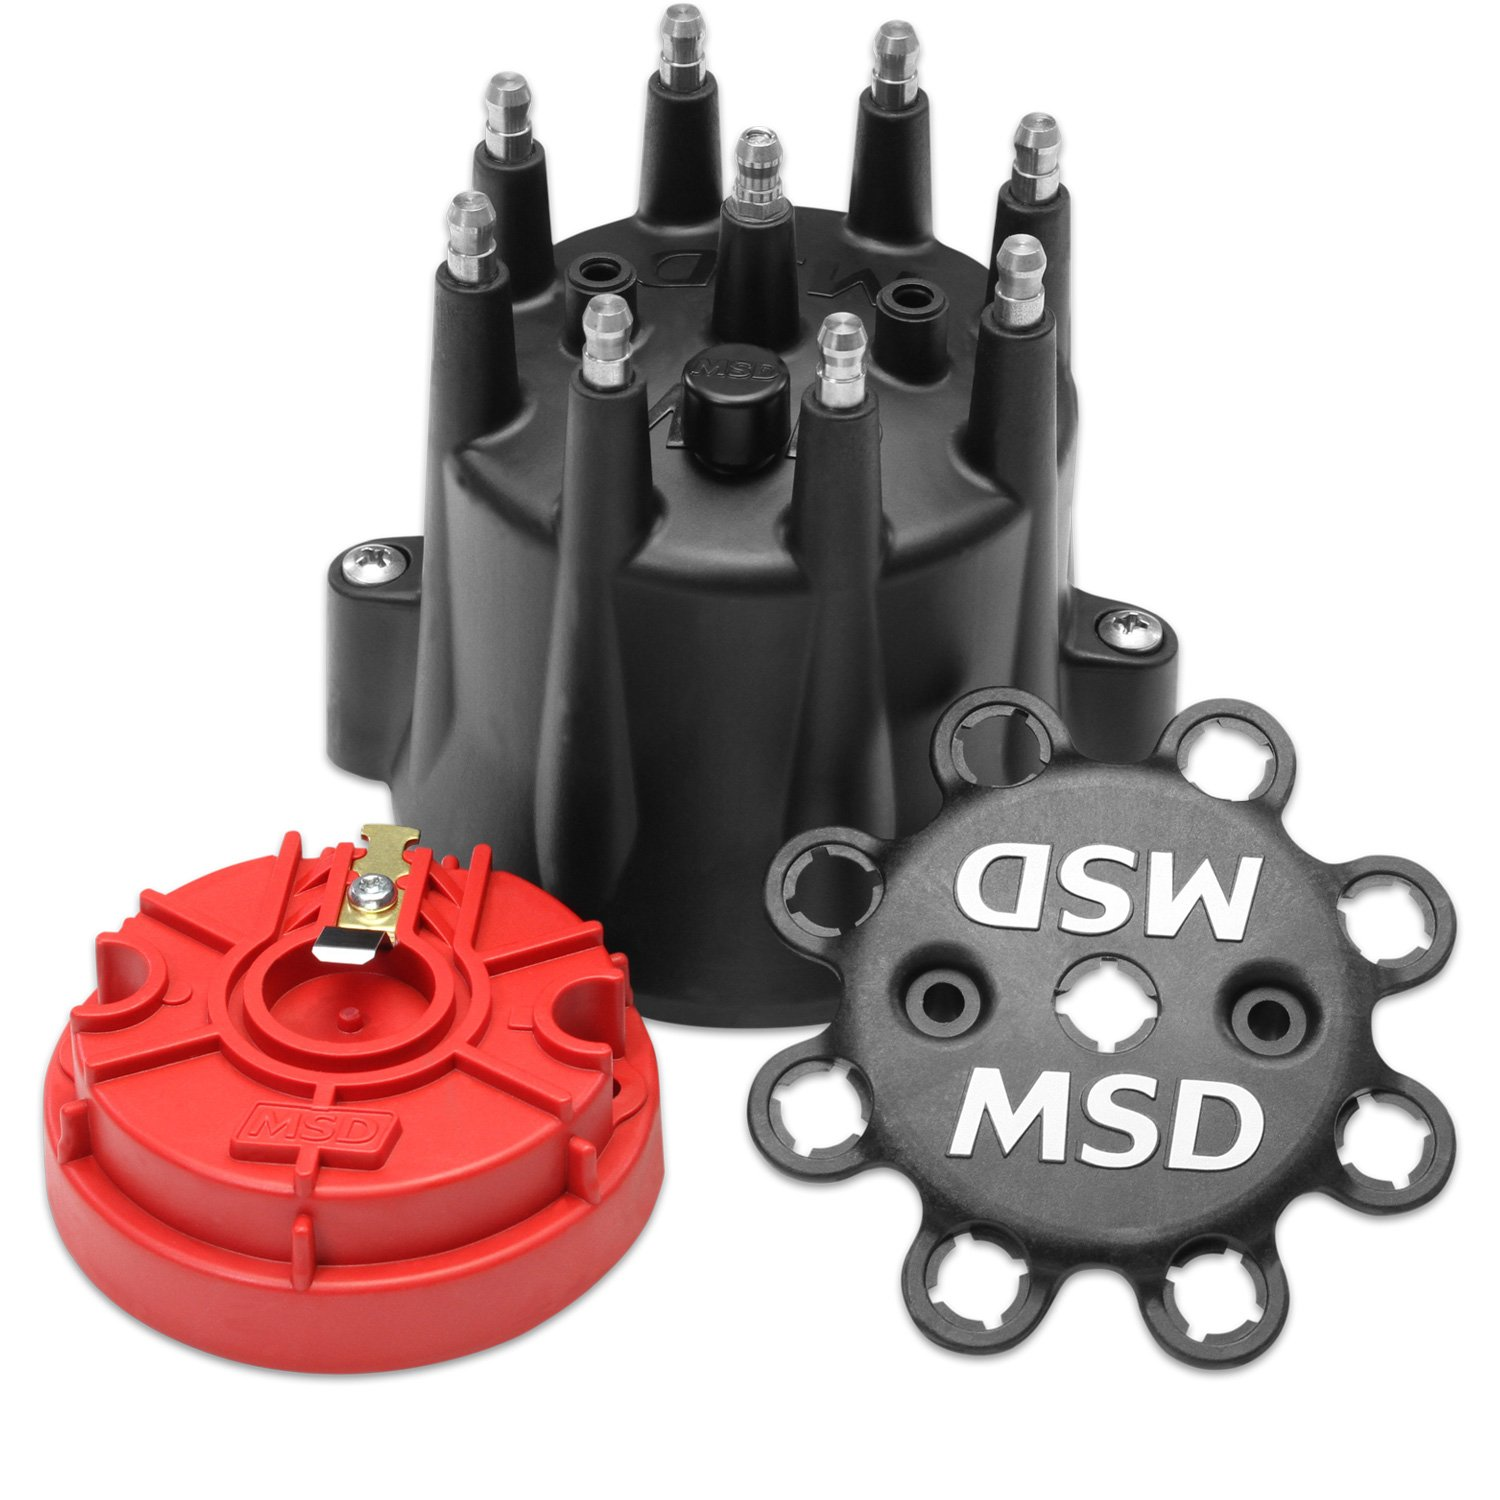 84336 - Black Chevy V8 HEI Distributor Cap and Rotor Image